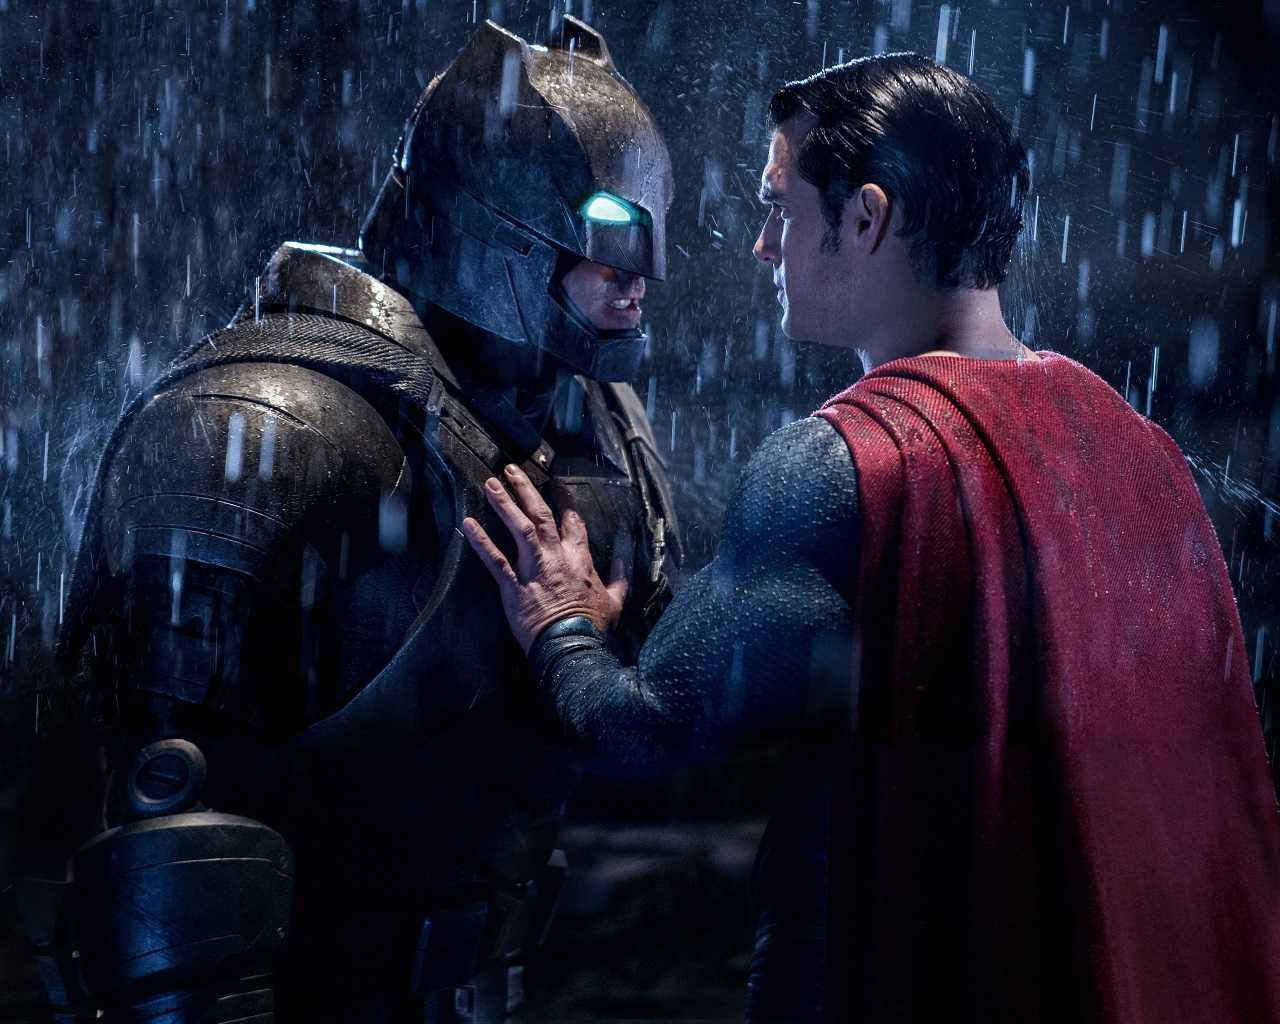 Batman (Ben Affleck) vs Superman (Henry Cavill) in Batman V. Superman: Dawn Of Justice (2016)